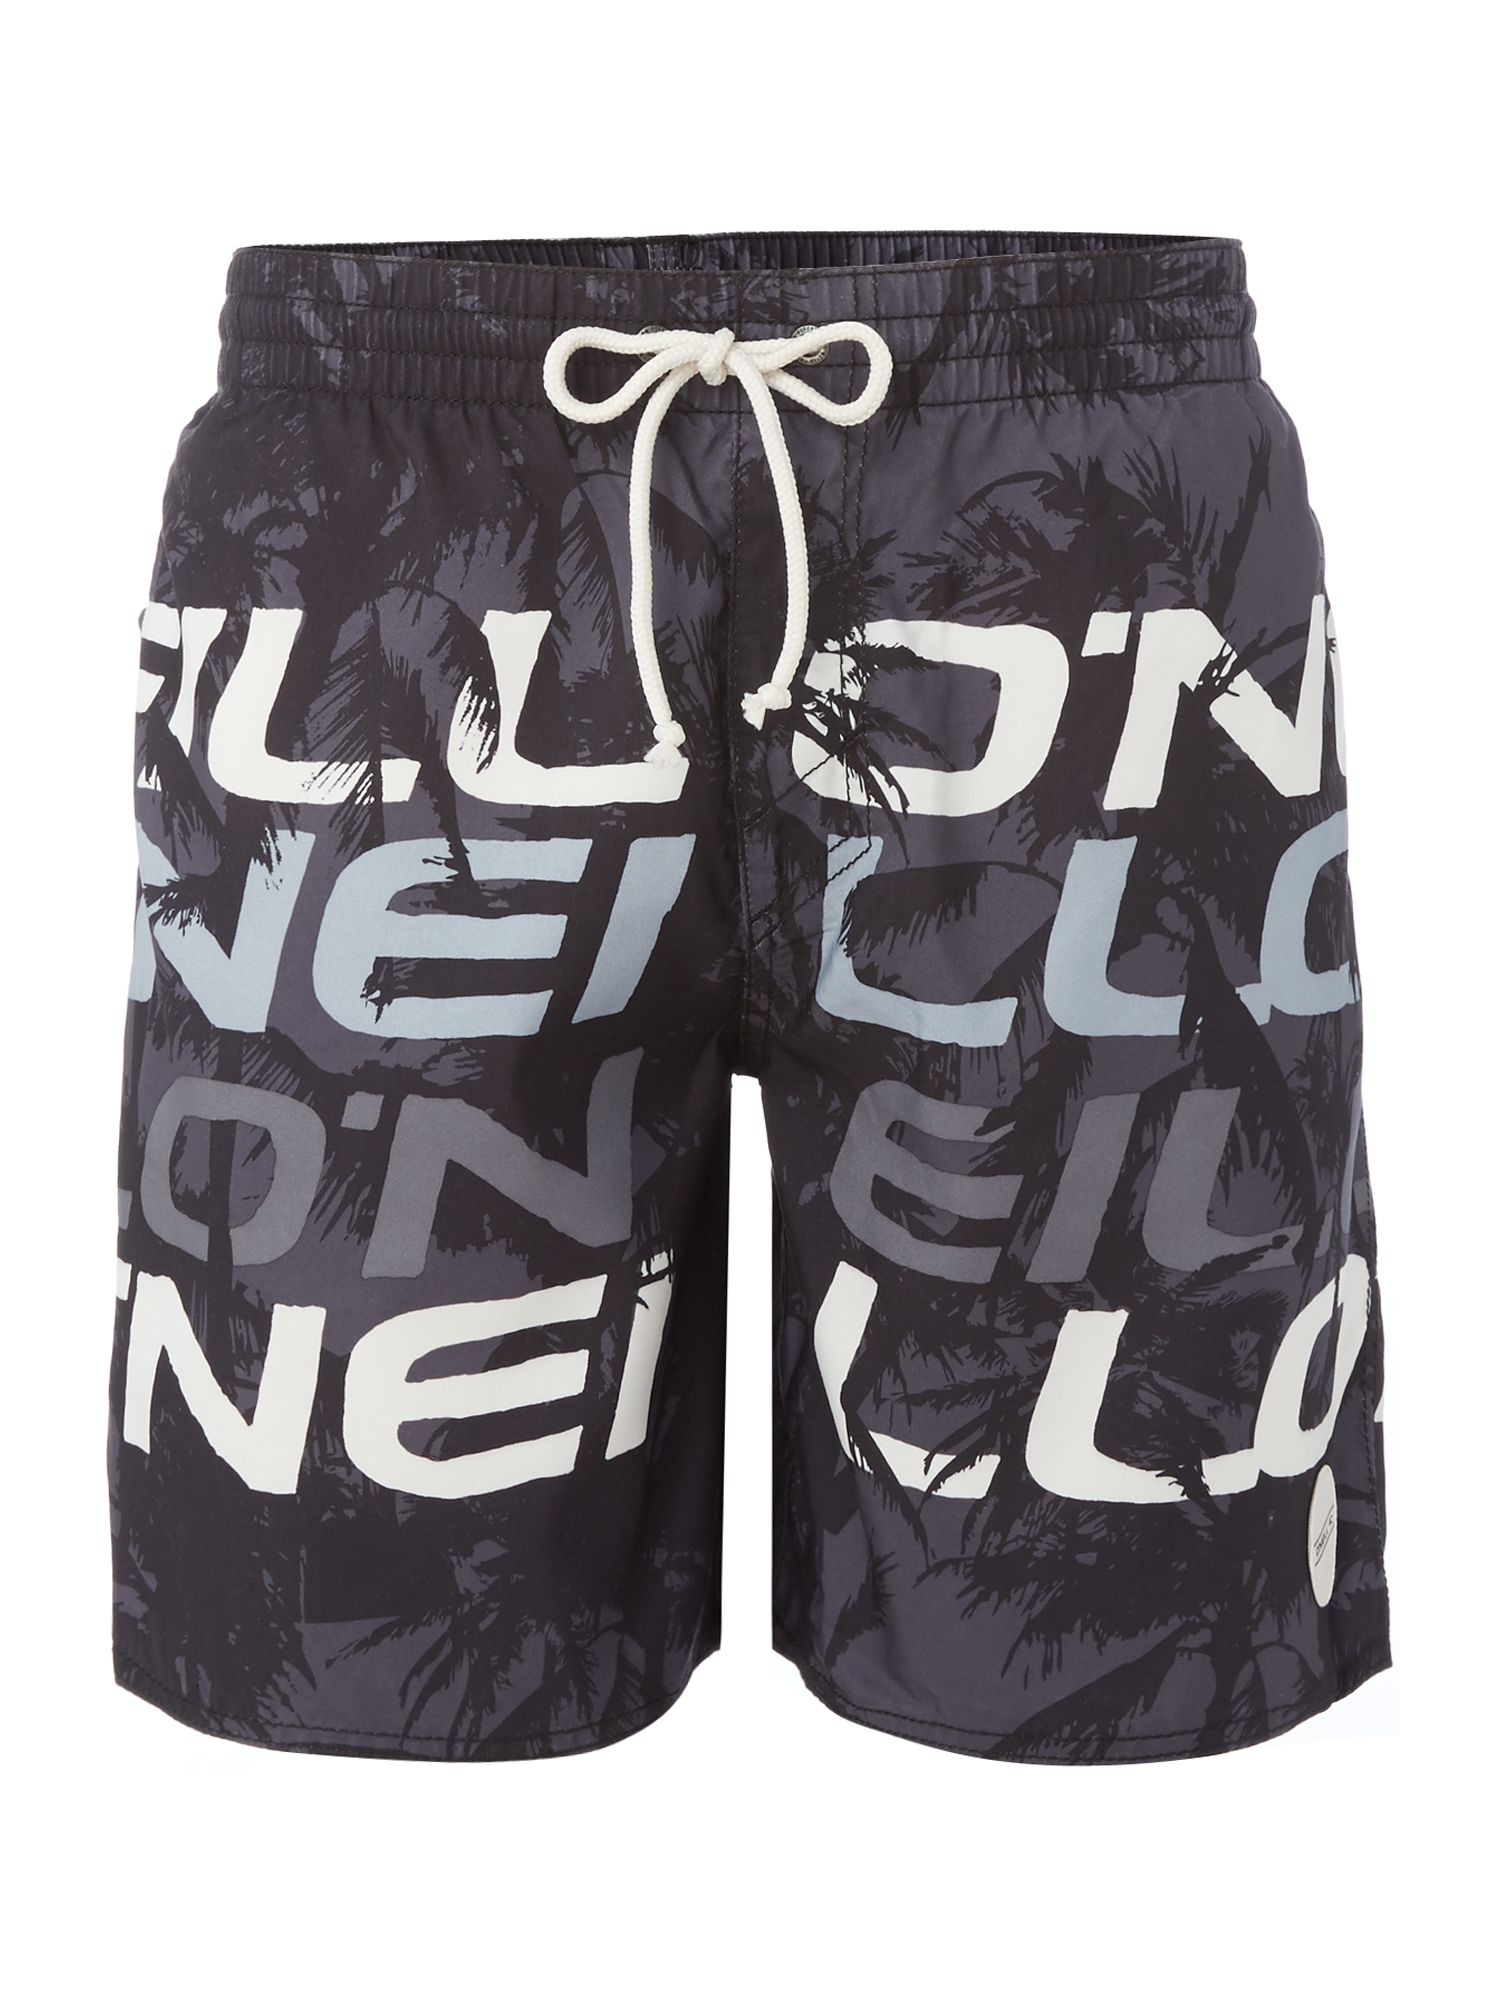 Men's O'Neill Stacked 3 shorts, Black